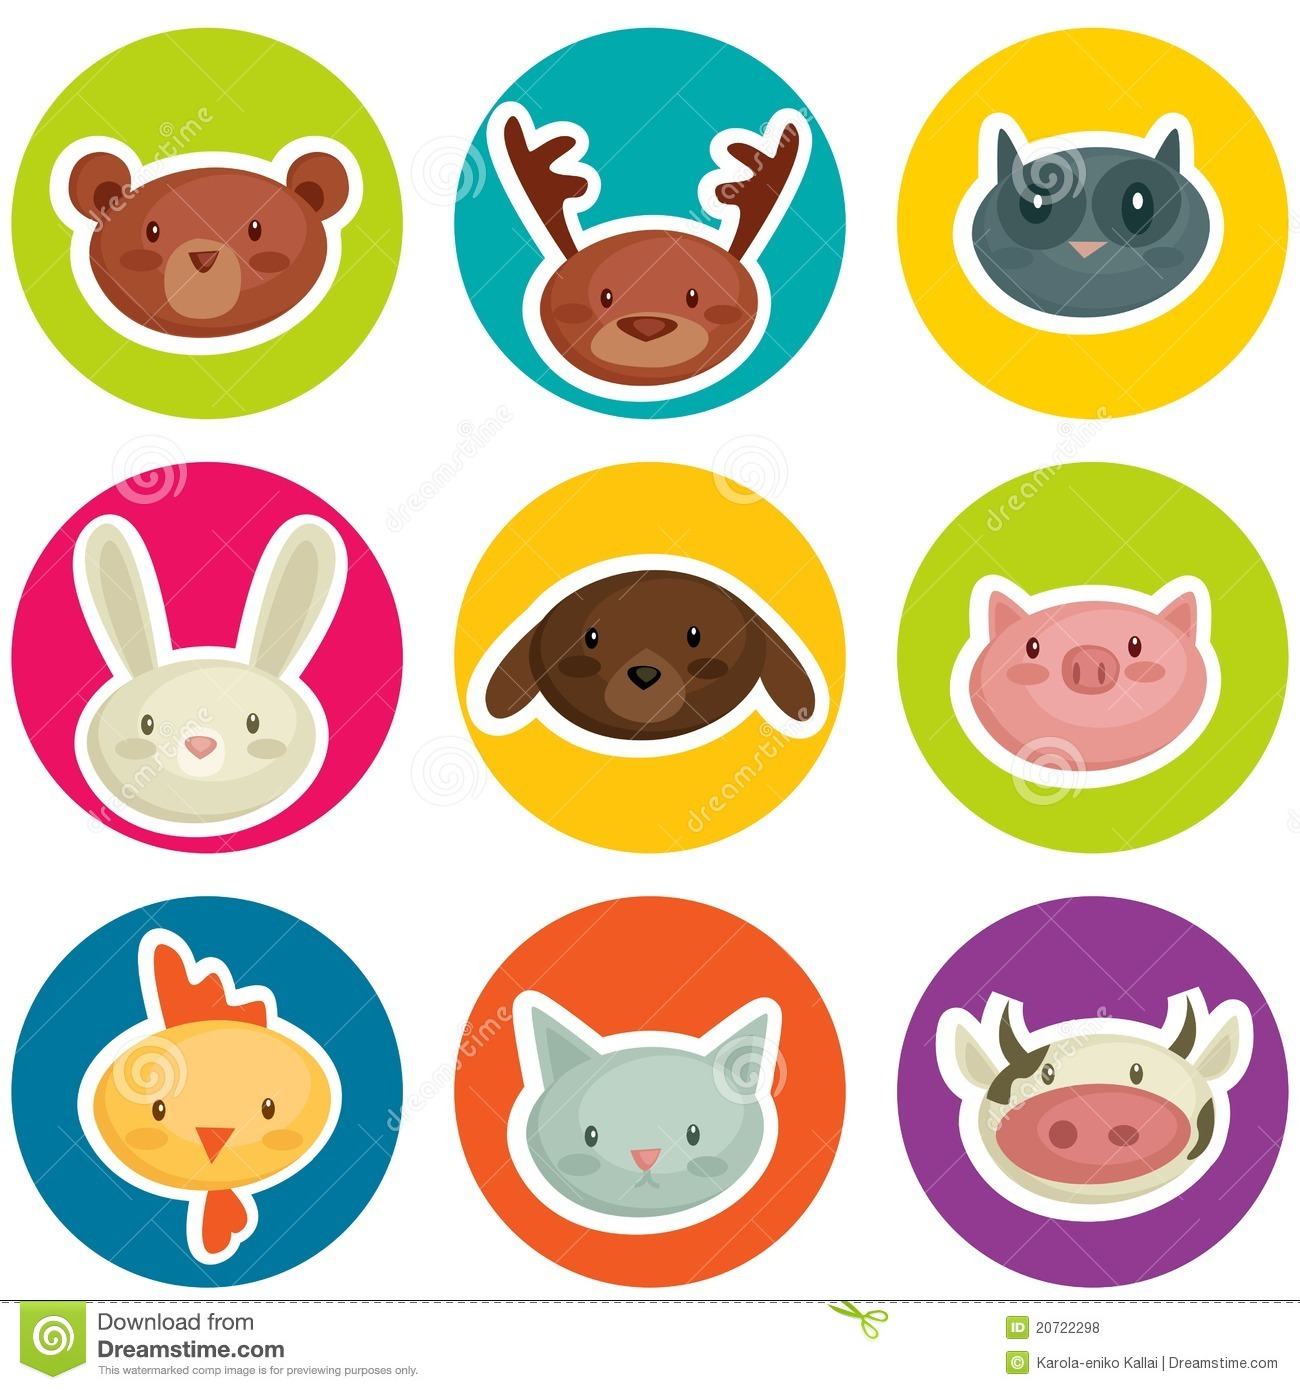 cartoon animal stickers in - photo #31